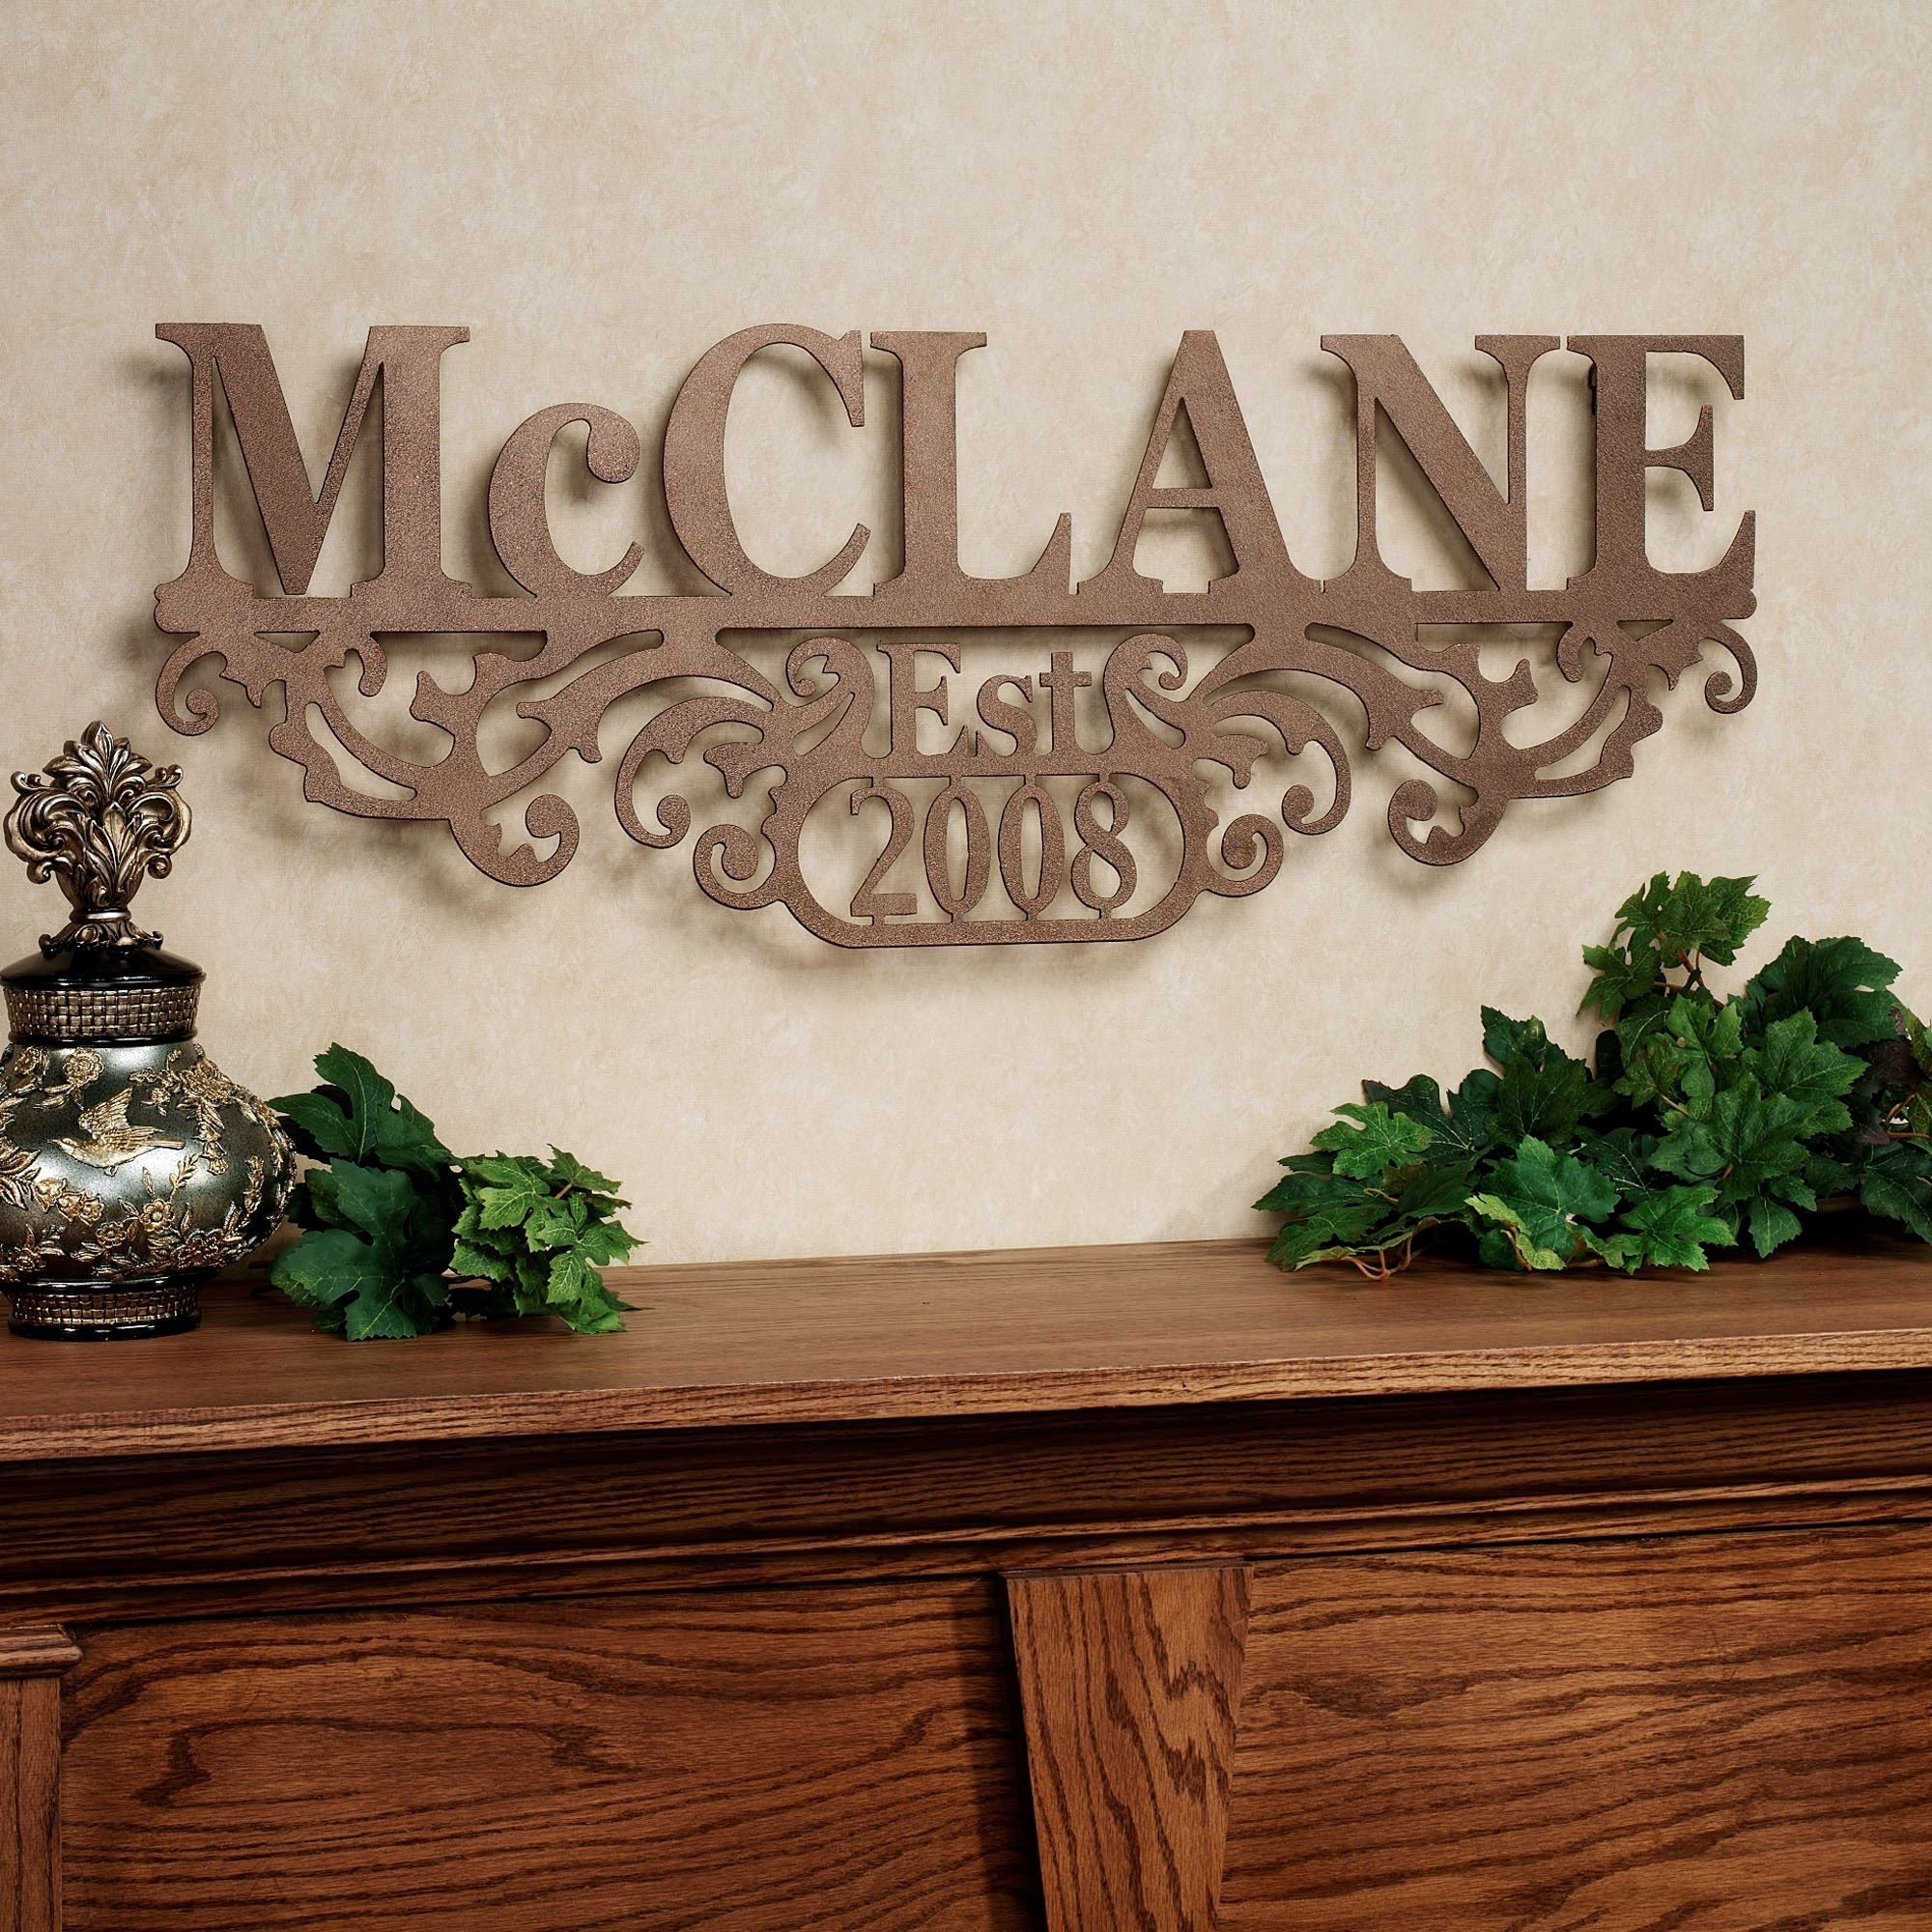 Awesome Customized Family Name Wall Art Collection | Wall Decoration Inside Family Name Wall Art (View 19 of 20)